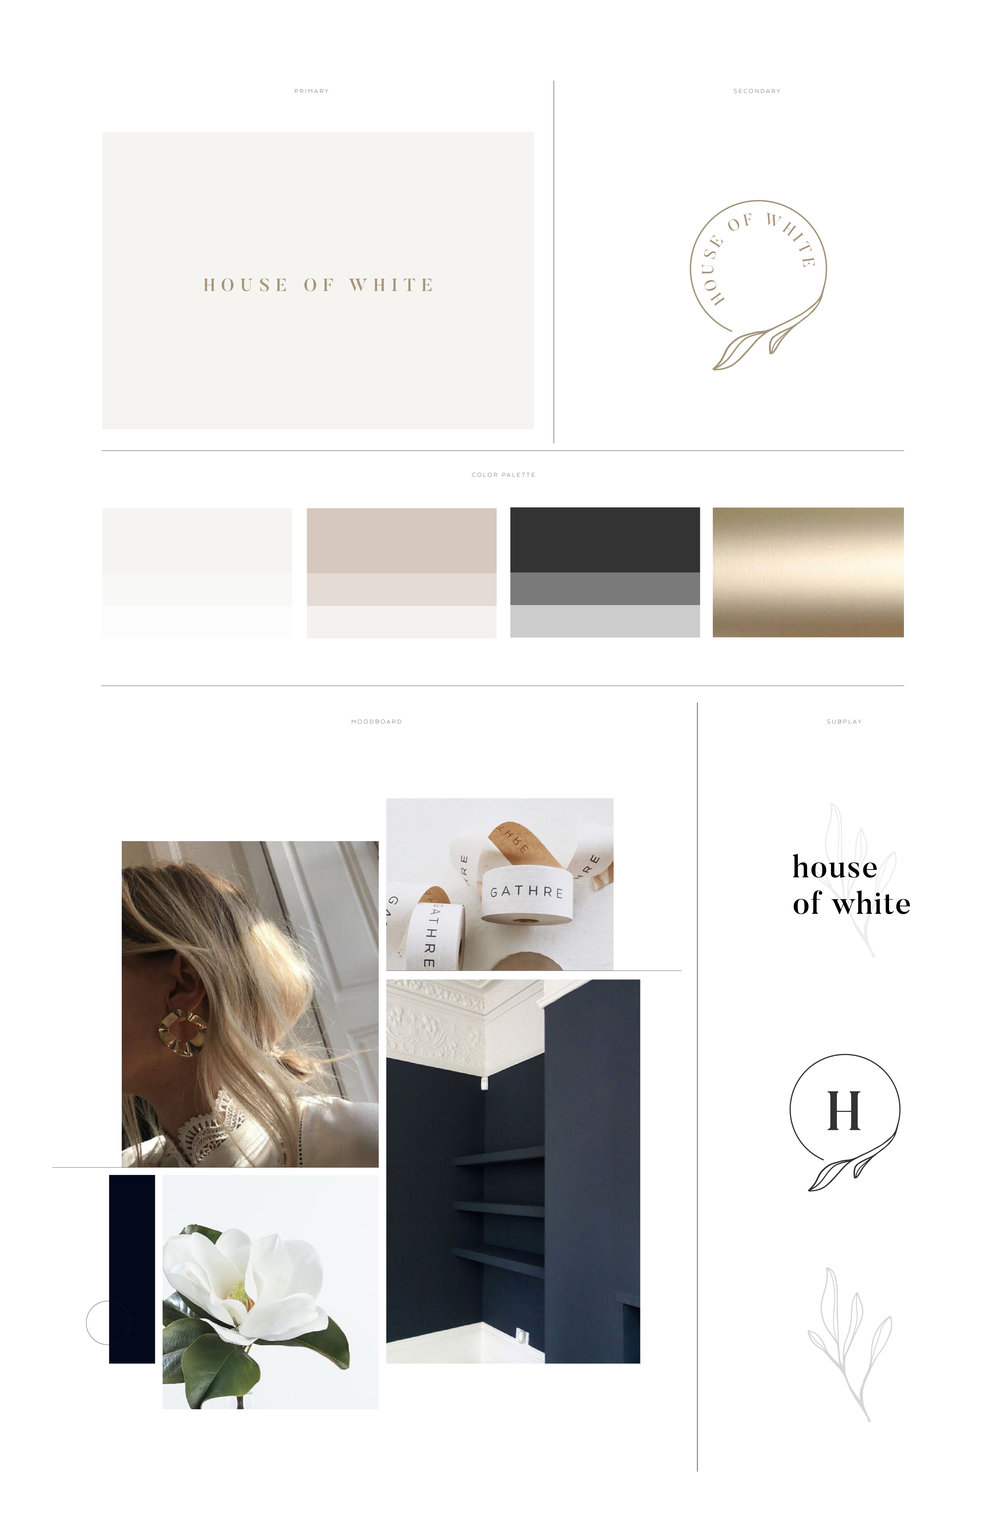 HOUSEOFWHITE_HONOR_BRANDBOARD_01.jpg